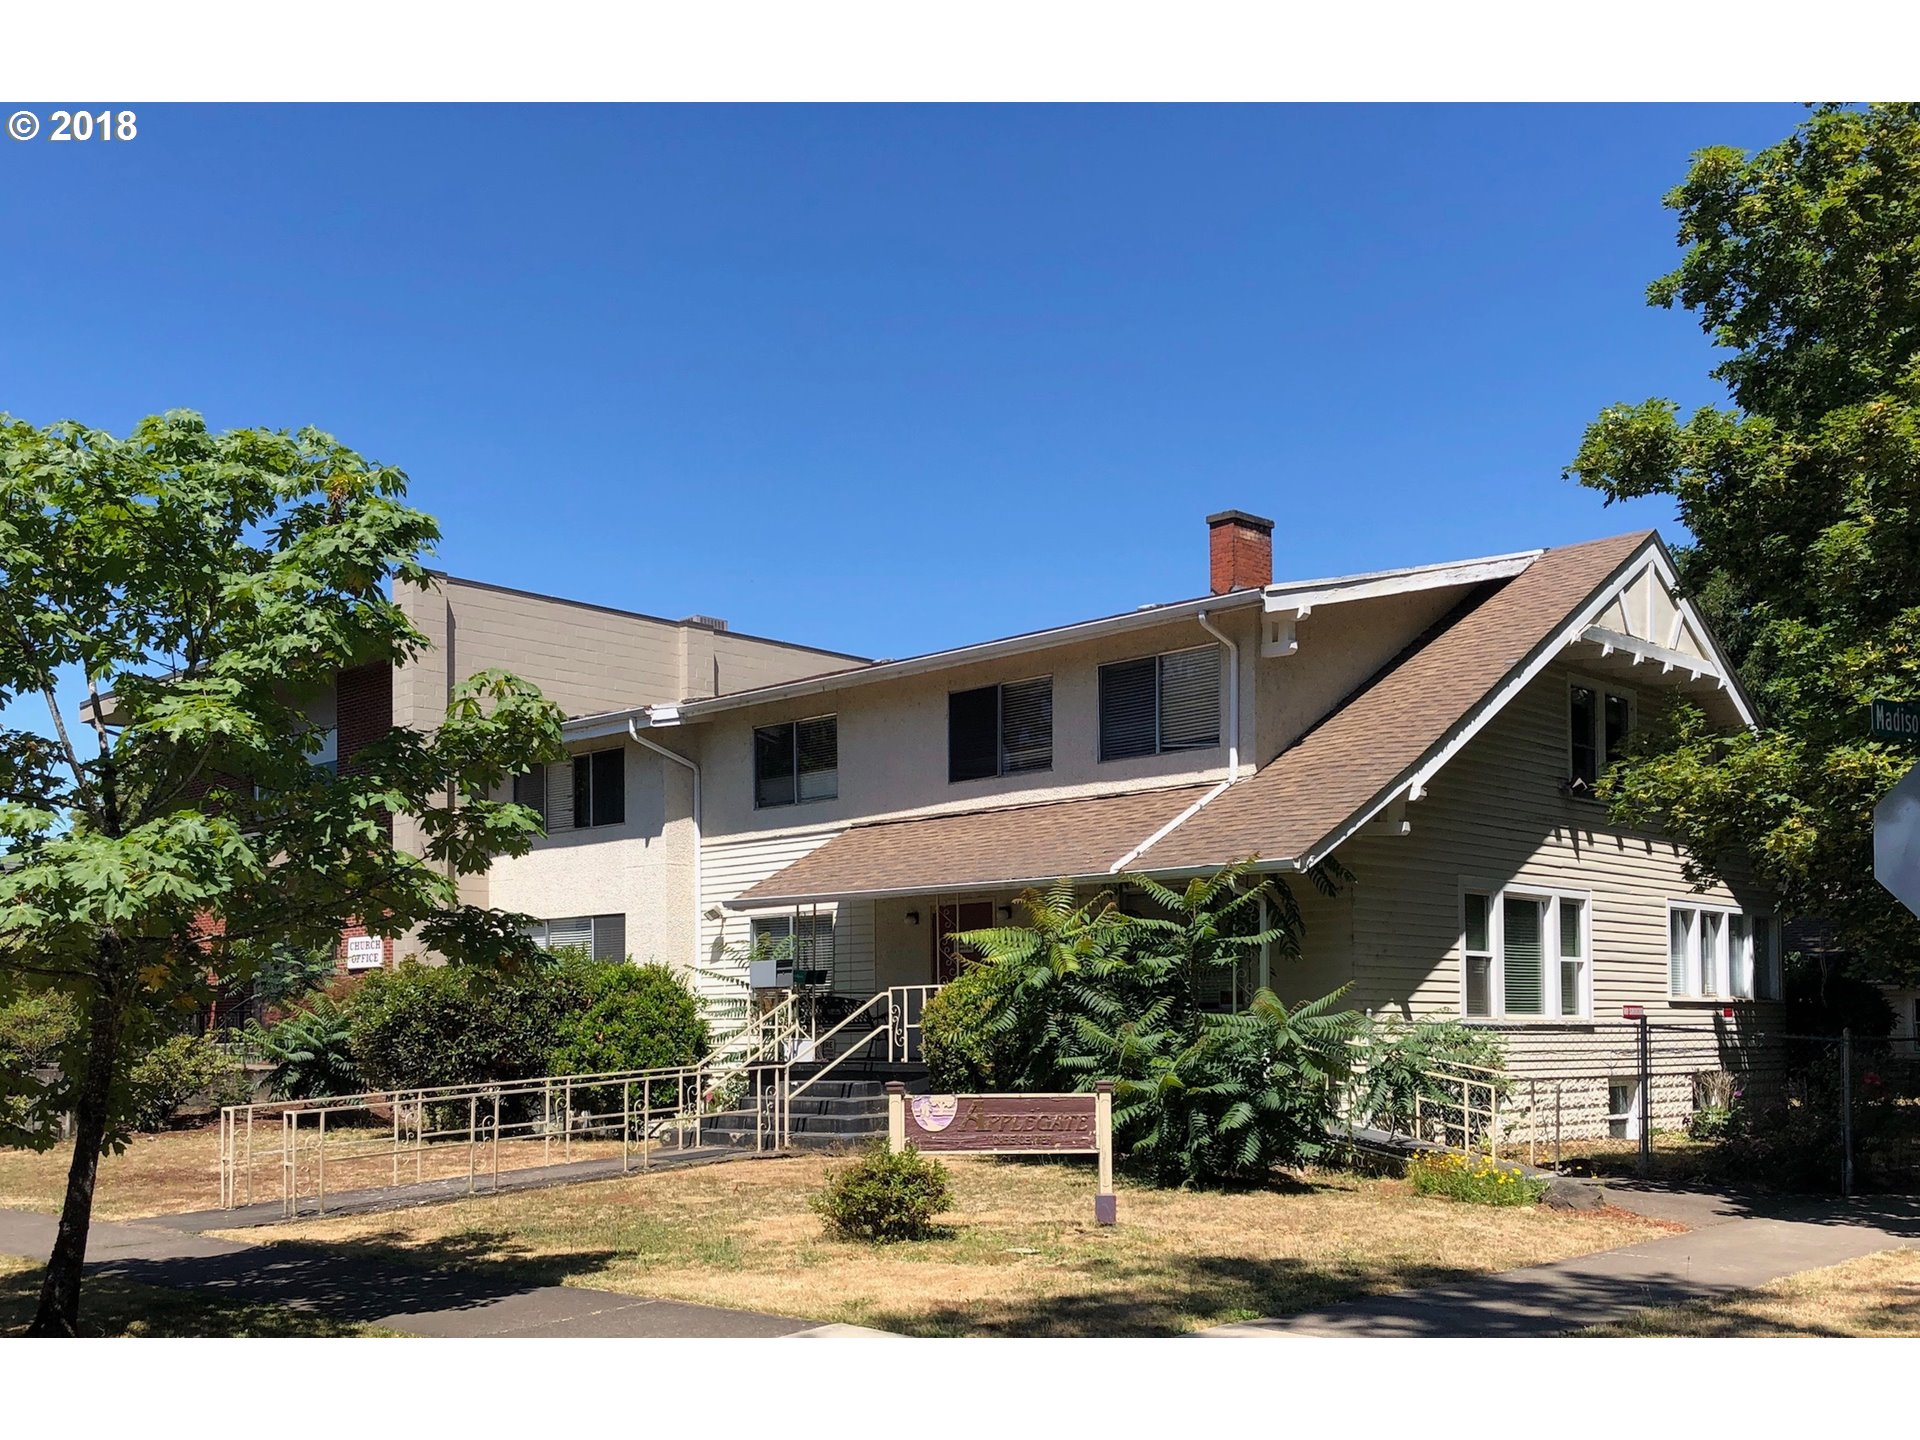 Eugene 12 Bedroom Home For Sale